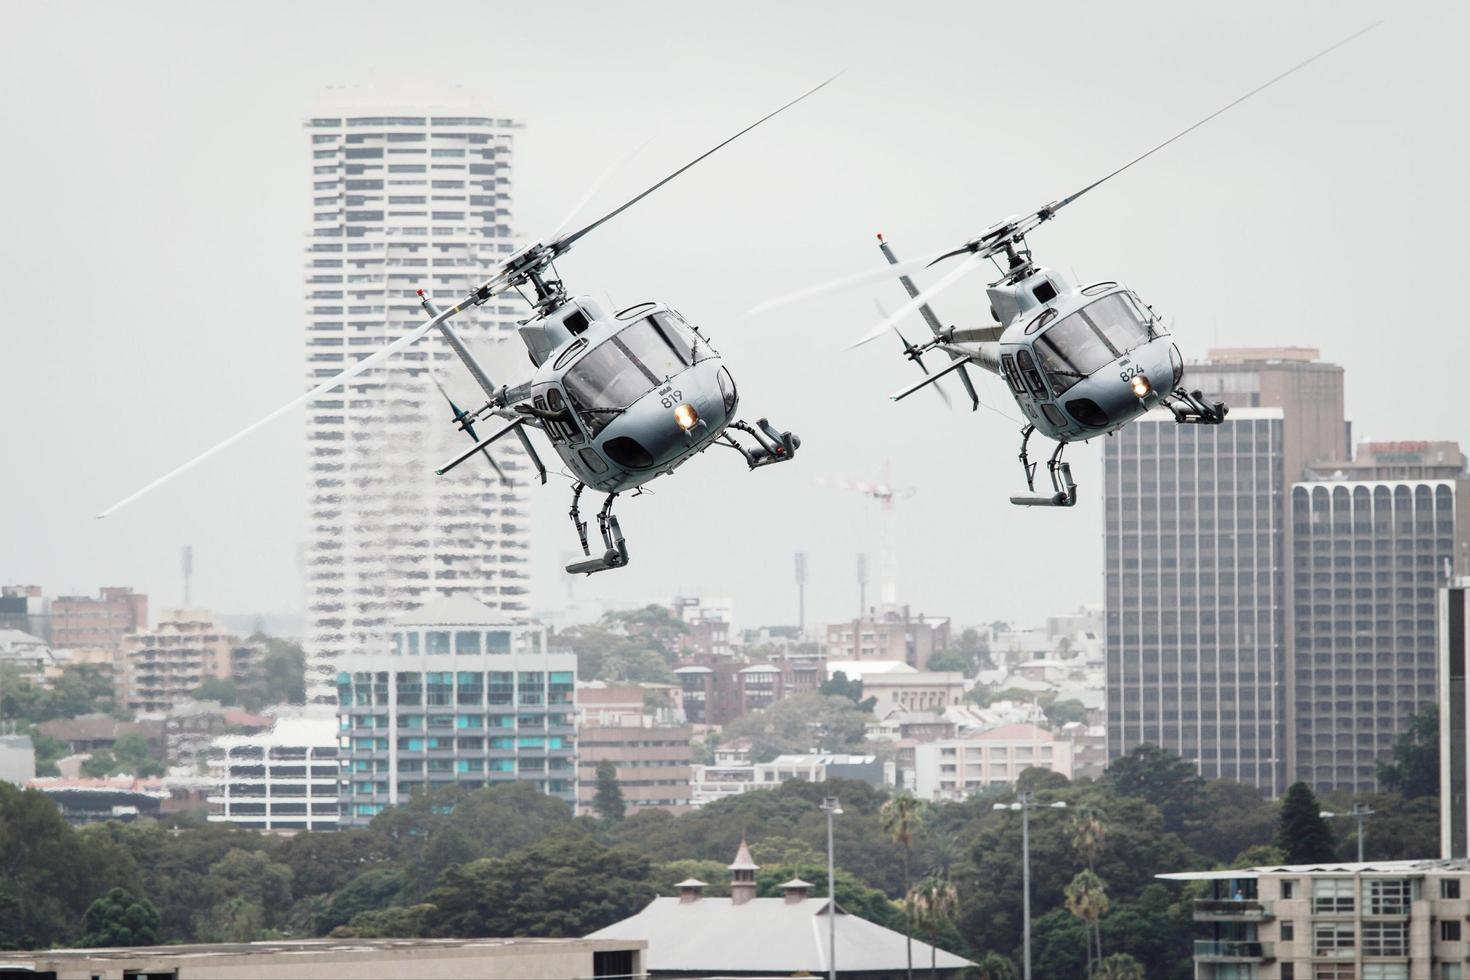 Sydney, Australia, 2020 - Two helicopters flying in the city photo